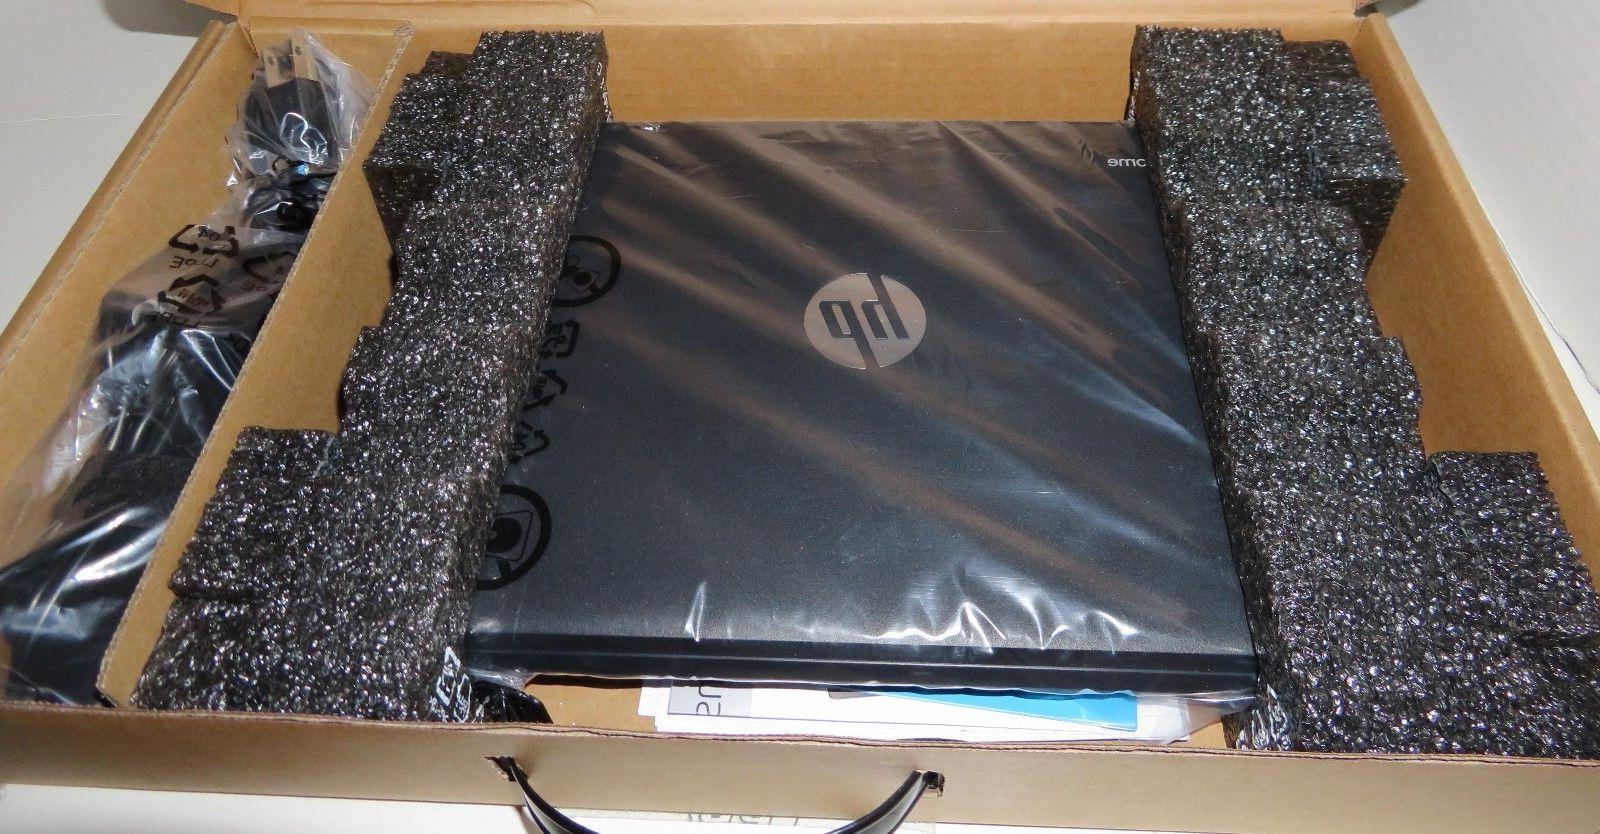 Computer HP PC Chromebook electronics 11.6 in.16GB, Intel Ce